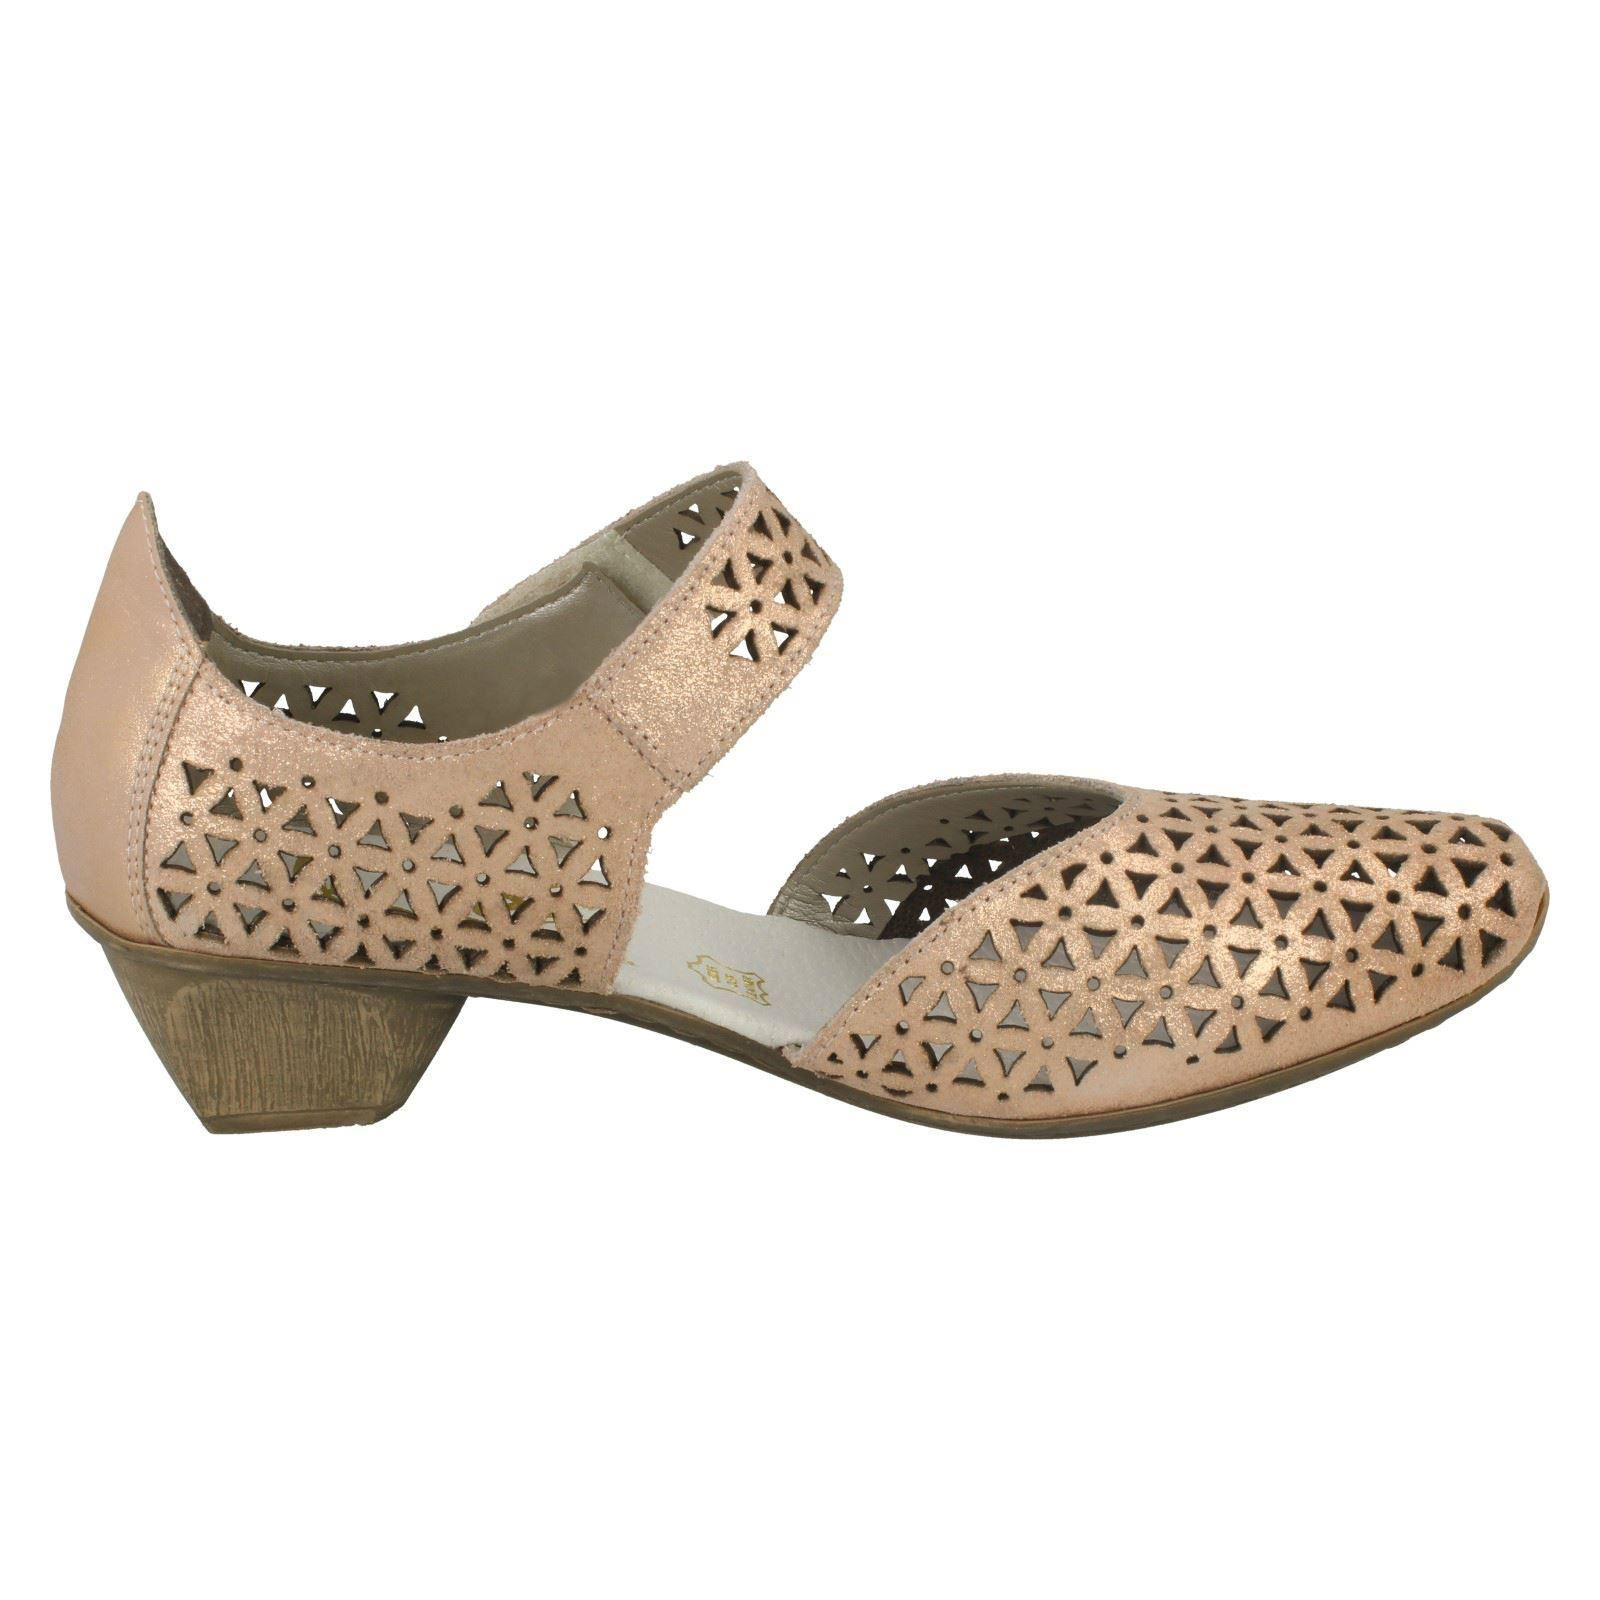 Hobbs Dark Pewter Leather Court Shoes - size 37 37 size 383829